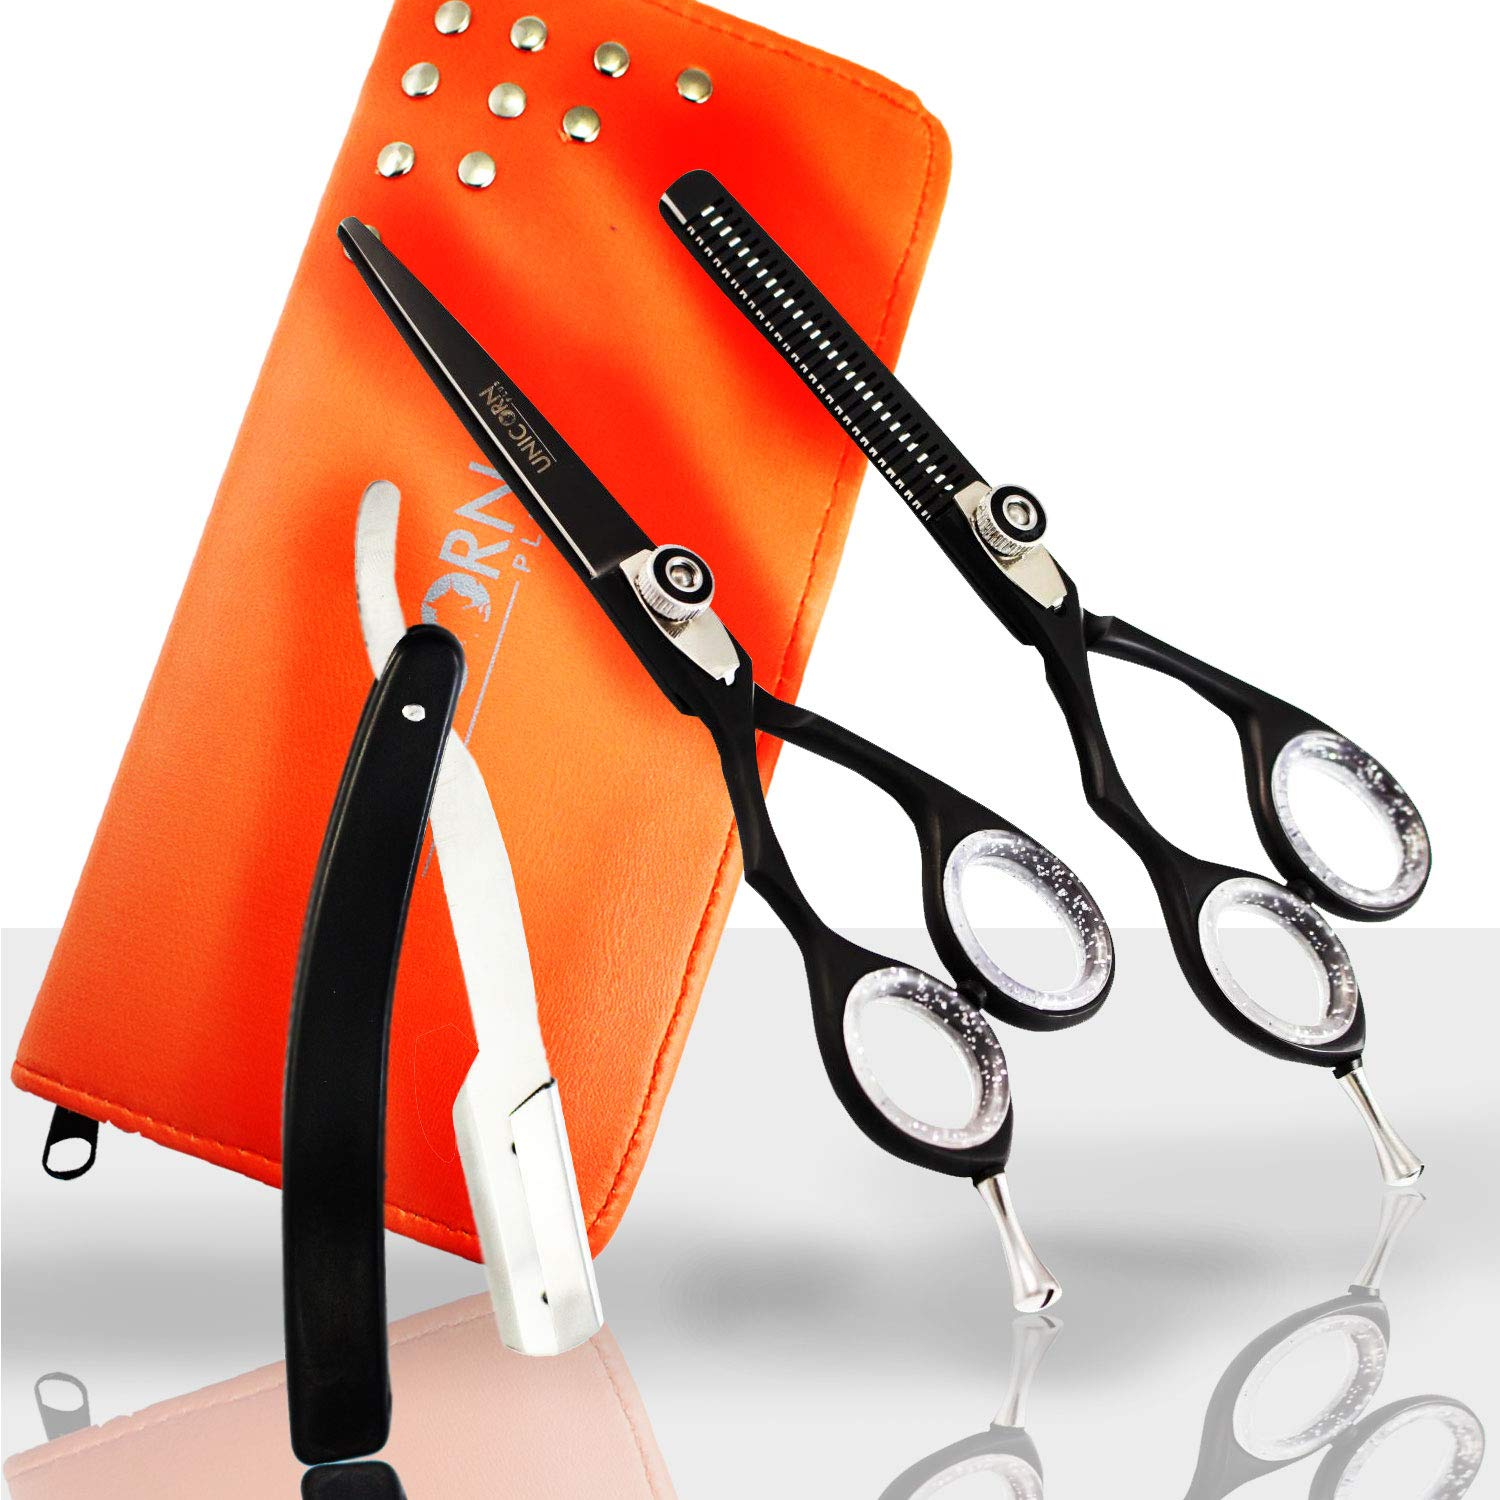 Professional Hairdressing scissors, Lefty Hair Shears Hairdressing Equipment Tool, Thinning Scissors Set 5.5 with White Inserts, Scissors for Salon & Home Use. [ Left Handed ] (Cutting Scissors) Unicorn Plus